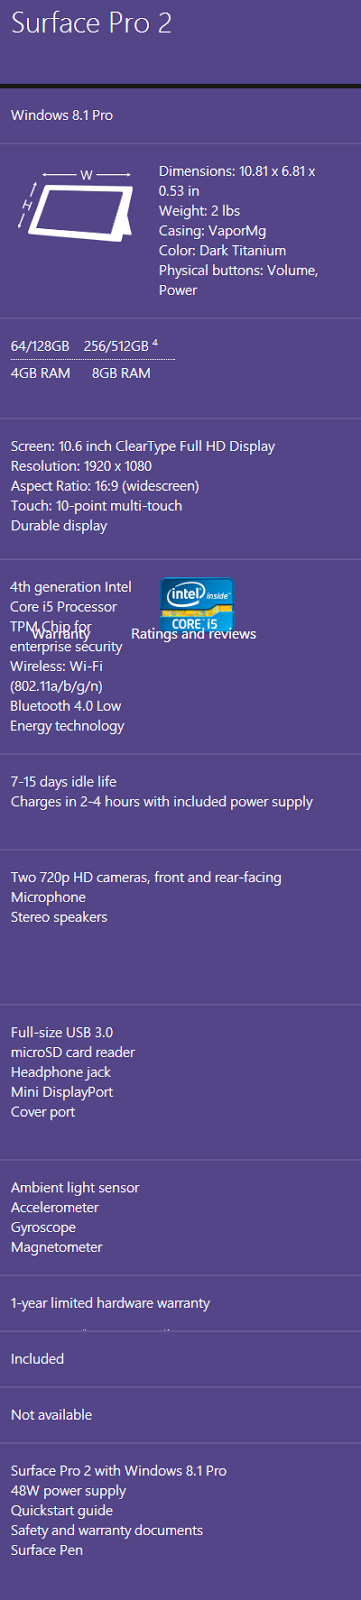 Microsoft Surface Pro 2 Specs and Features